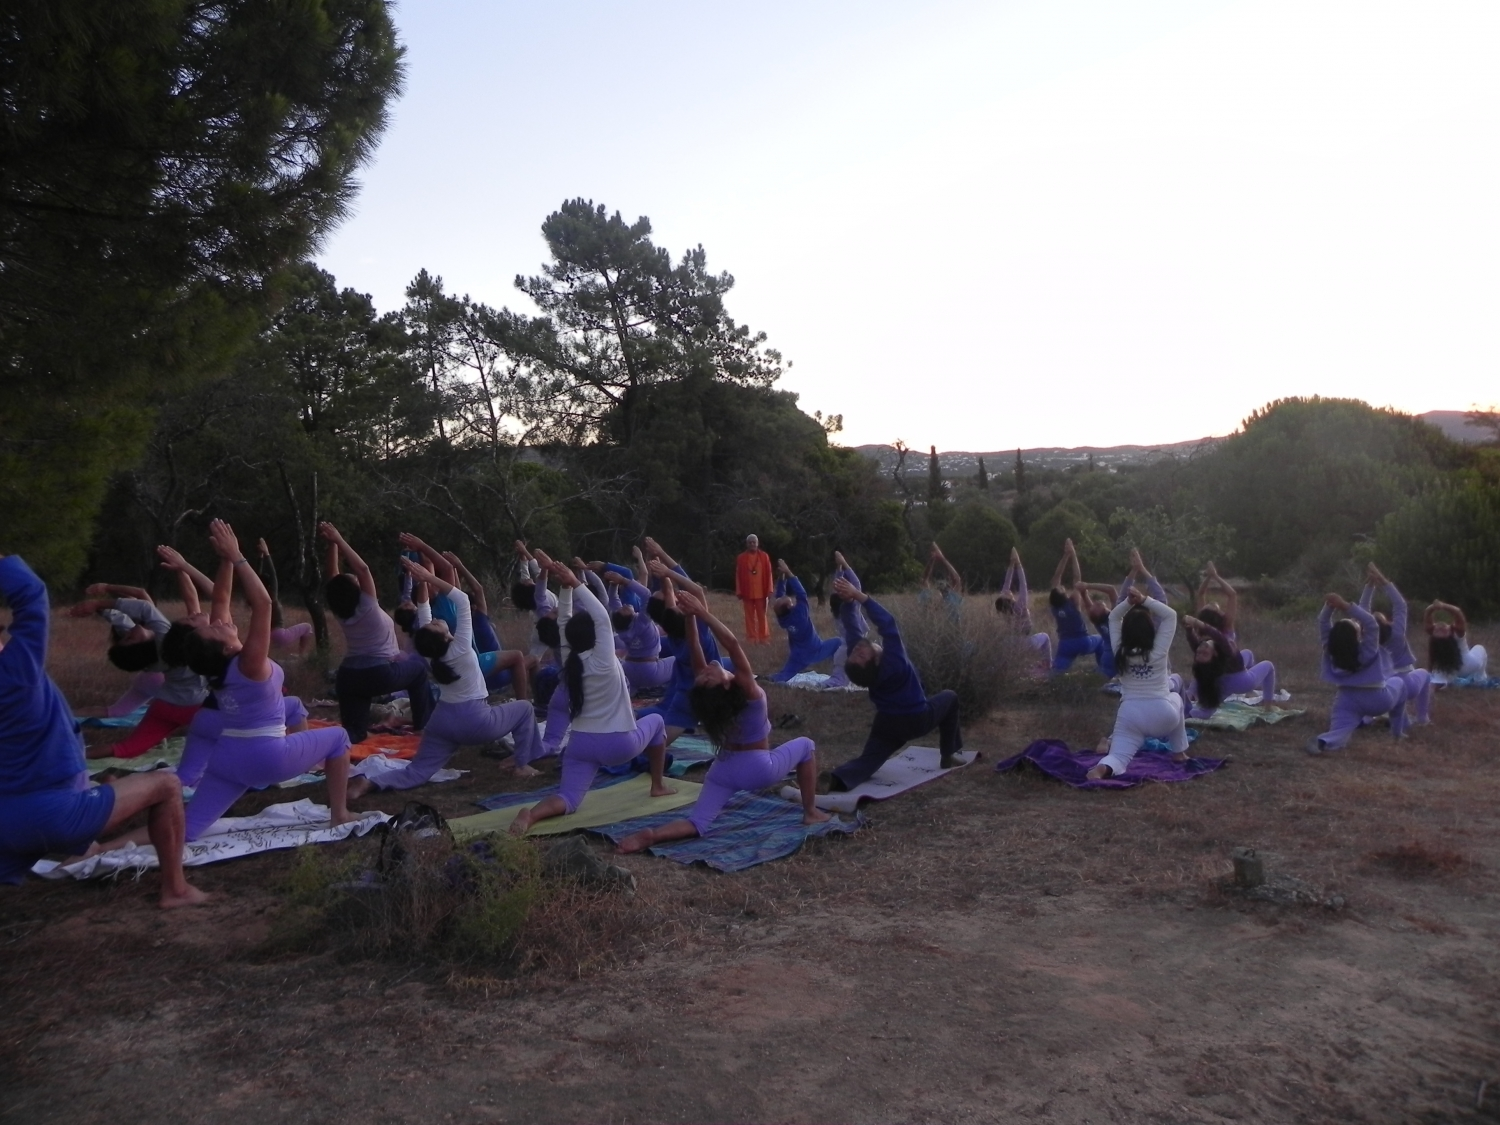 Semana Intensiva do Yoga - 2012 - Quinta da Calma, Algarve